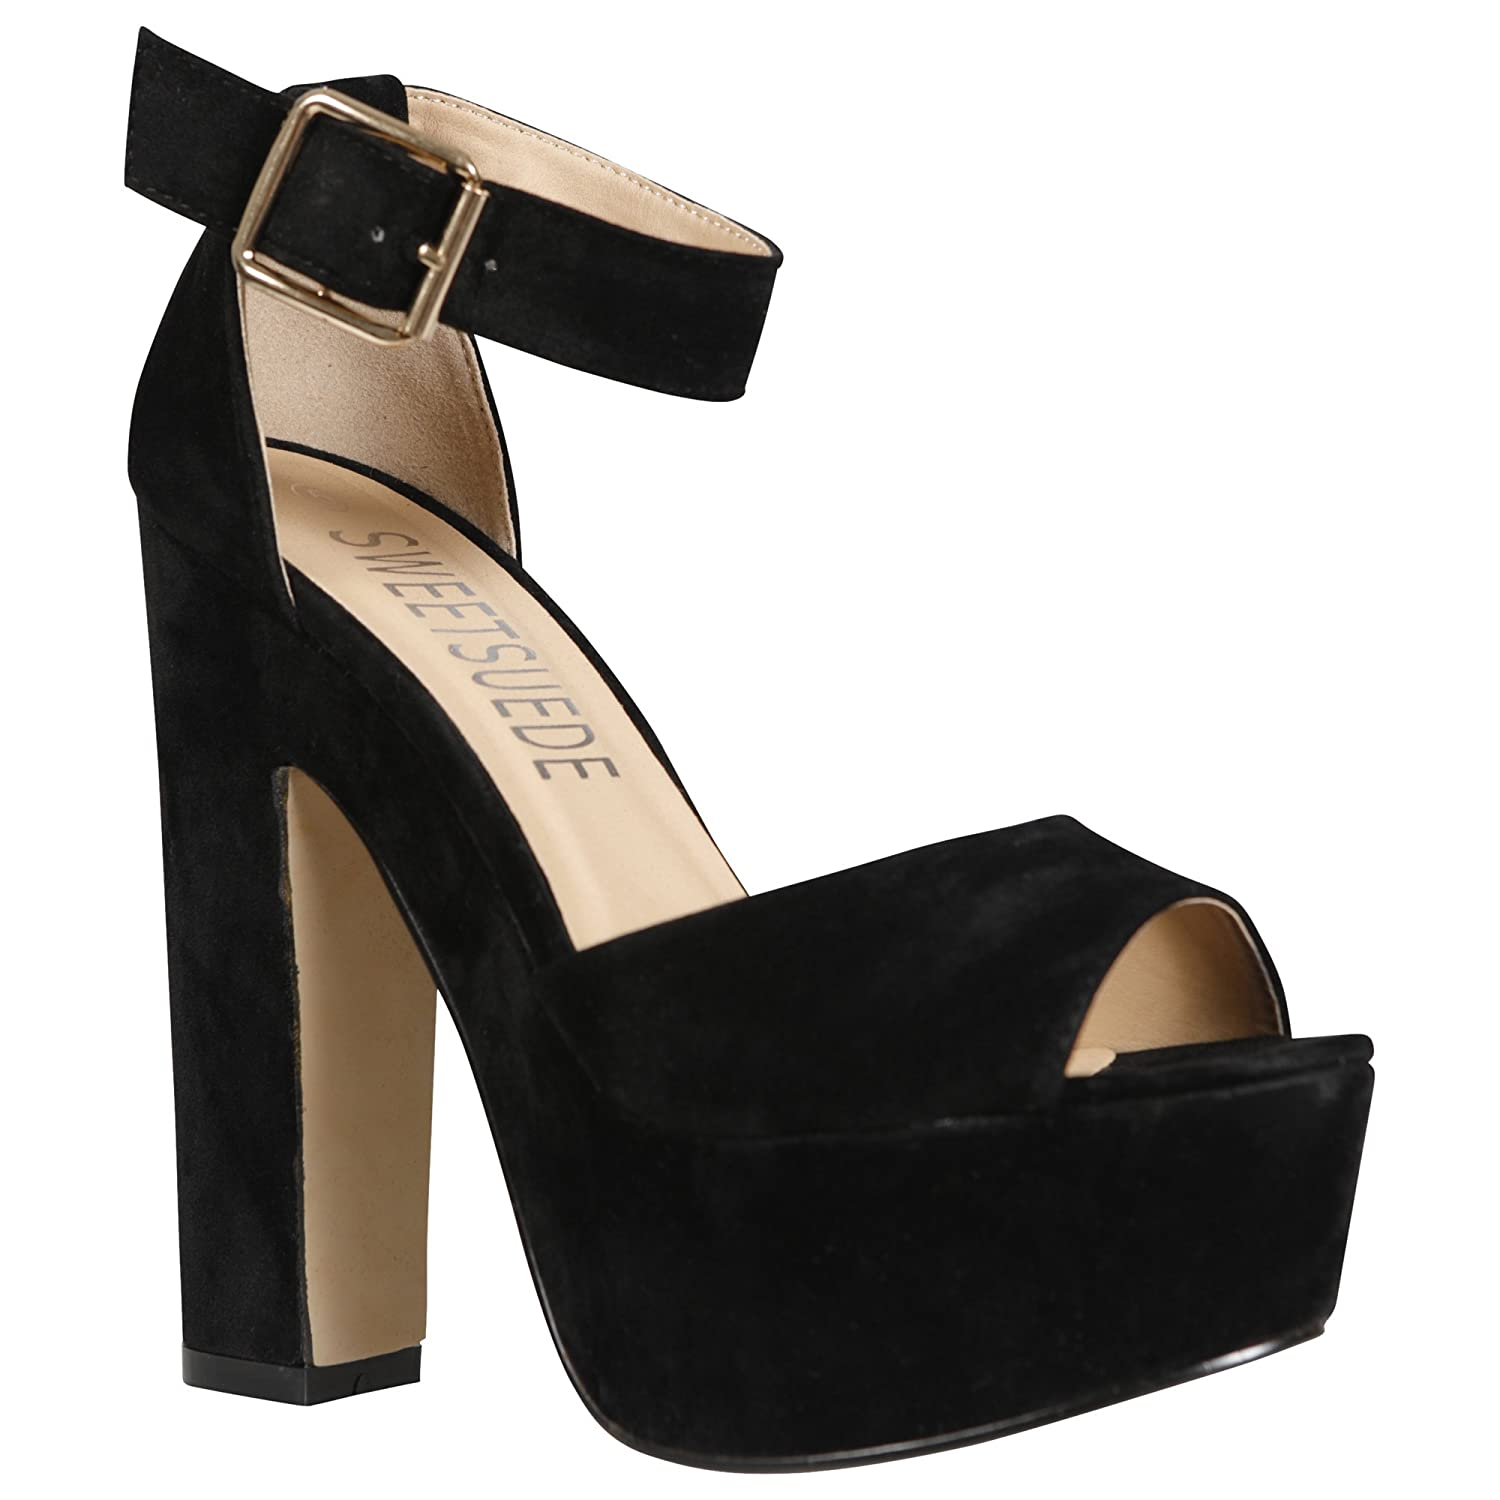 552ebe22c0e NEW WOMENS LADIES ANKLE STRAP PLATFORM CHUNKY HIGH HEEL SANDALS SHOES SIZE  3-8  Amazon.co.uk  Shoes   Bags